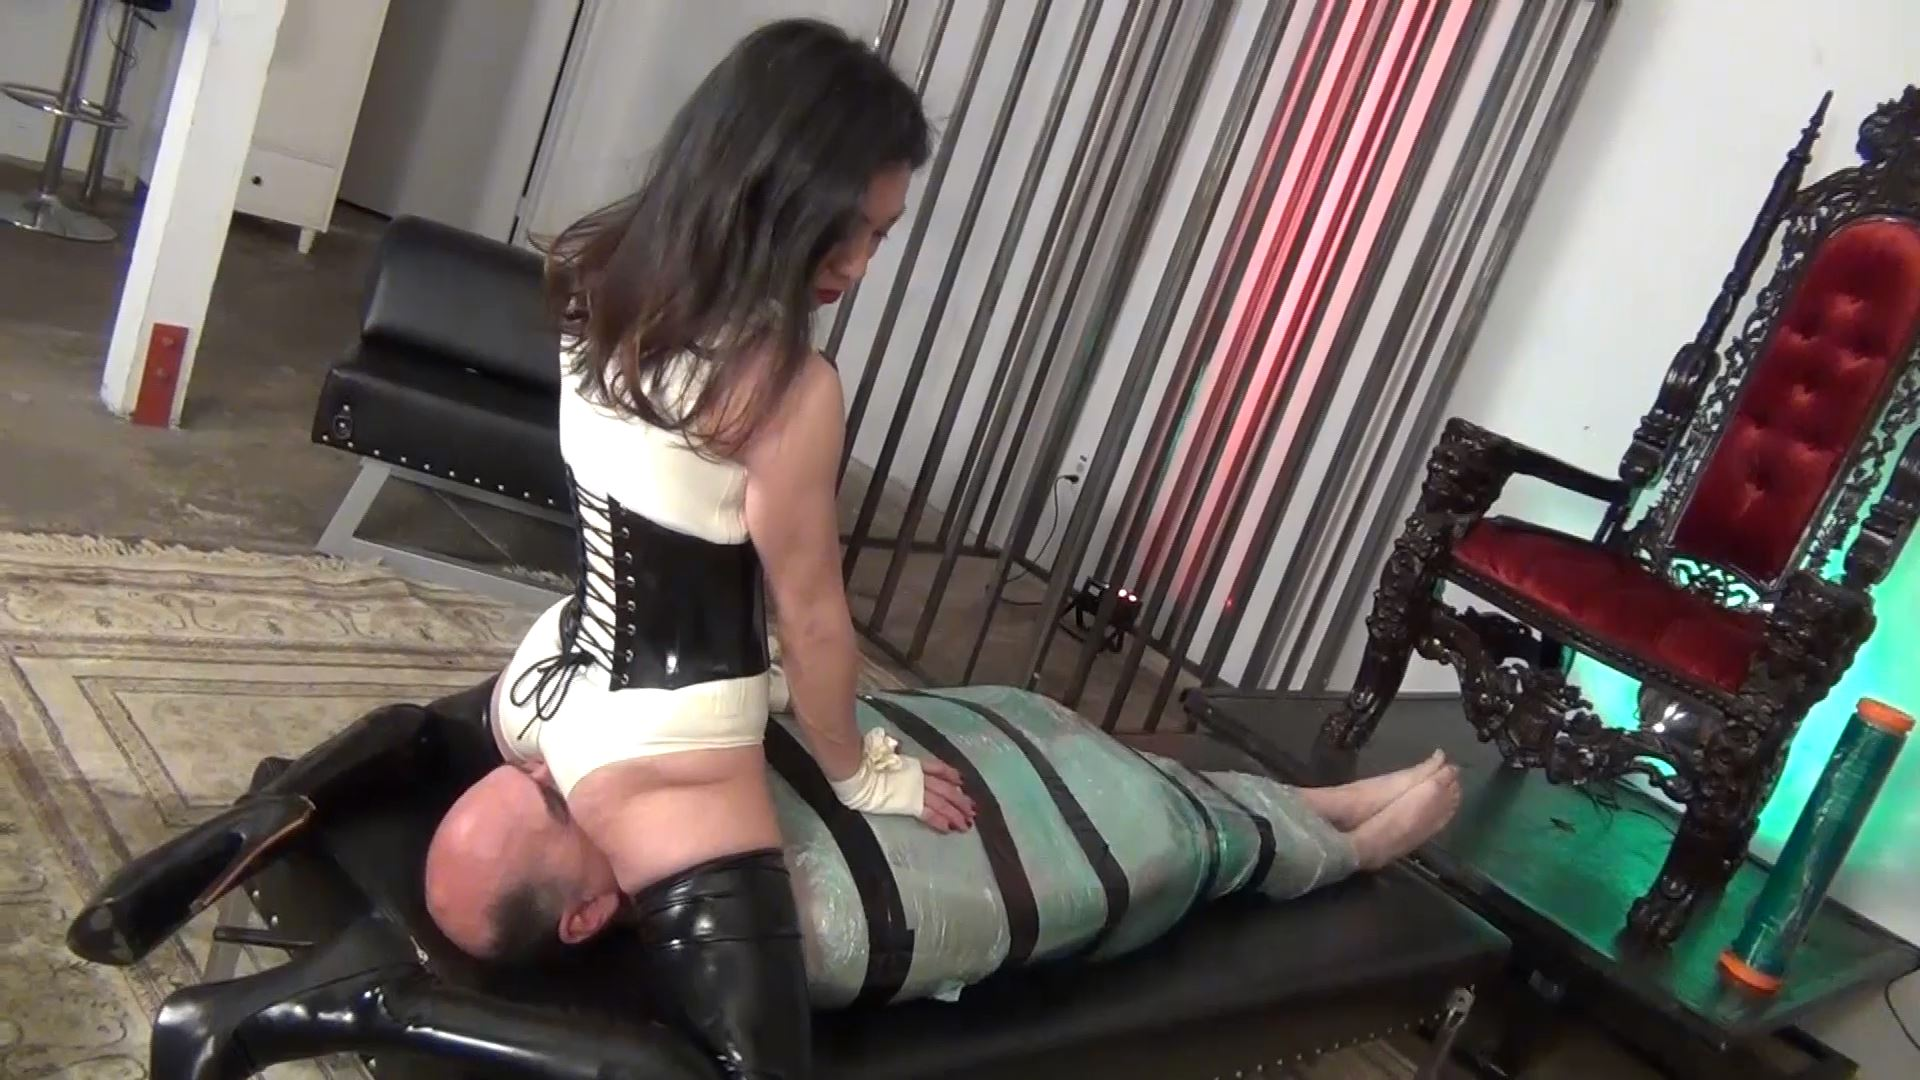 Goddess Pepper In Scene: YOU WILL ONLY BREATH MY ASS PART 2 - ASIAN CRUELTY - FULL HD/1080p/MP4